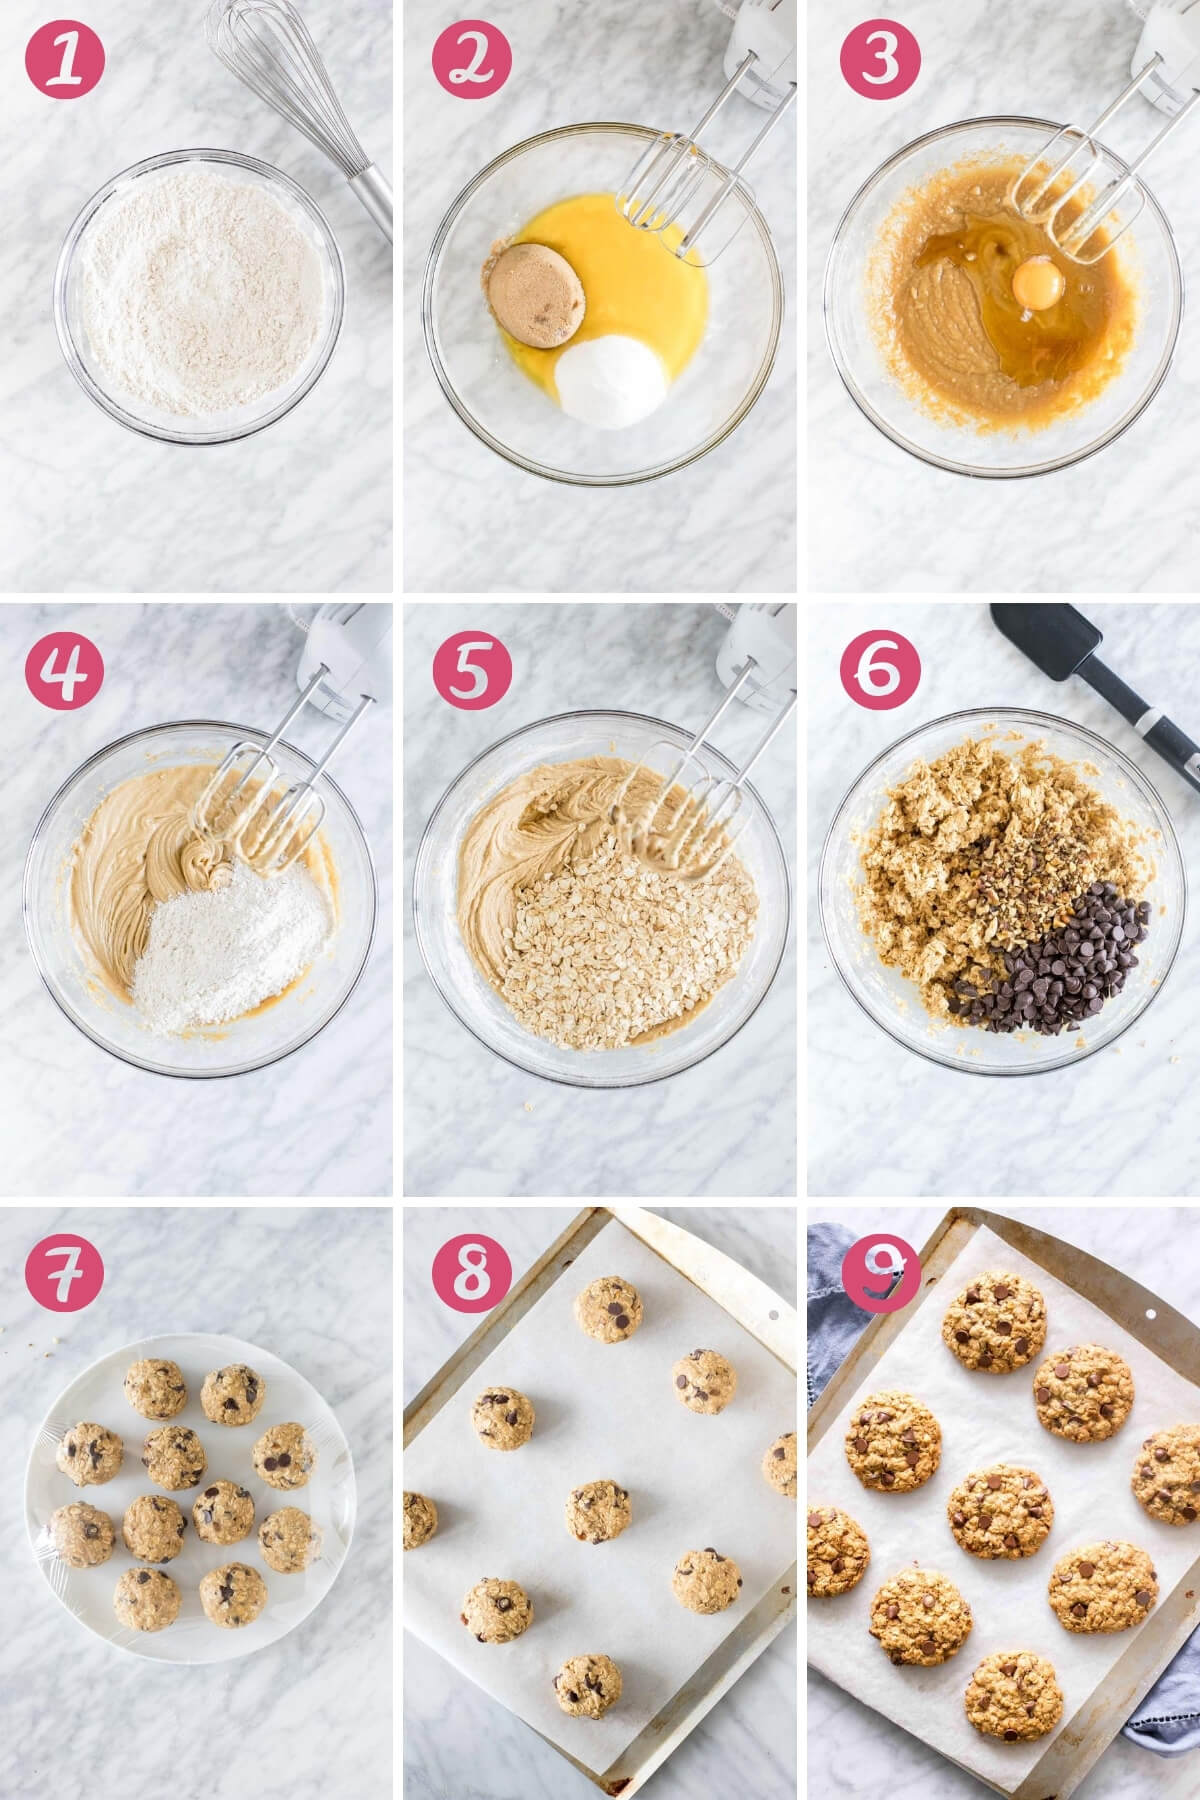 Collage of 9 photos showing how to make oatmeal chocolate chip cookies.